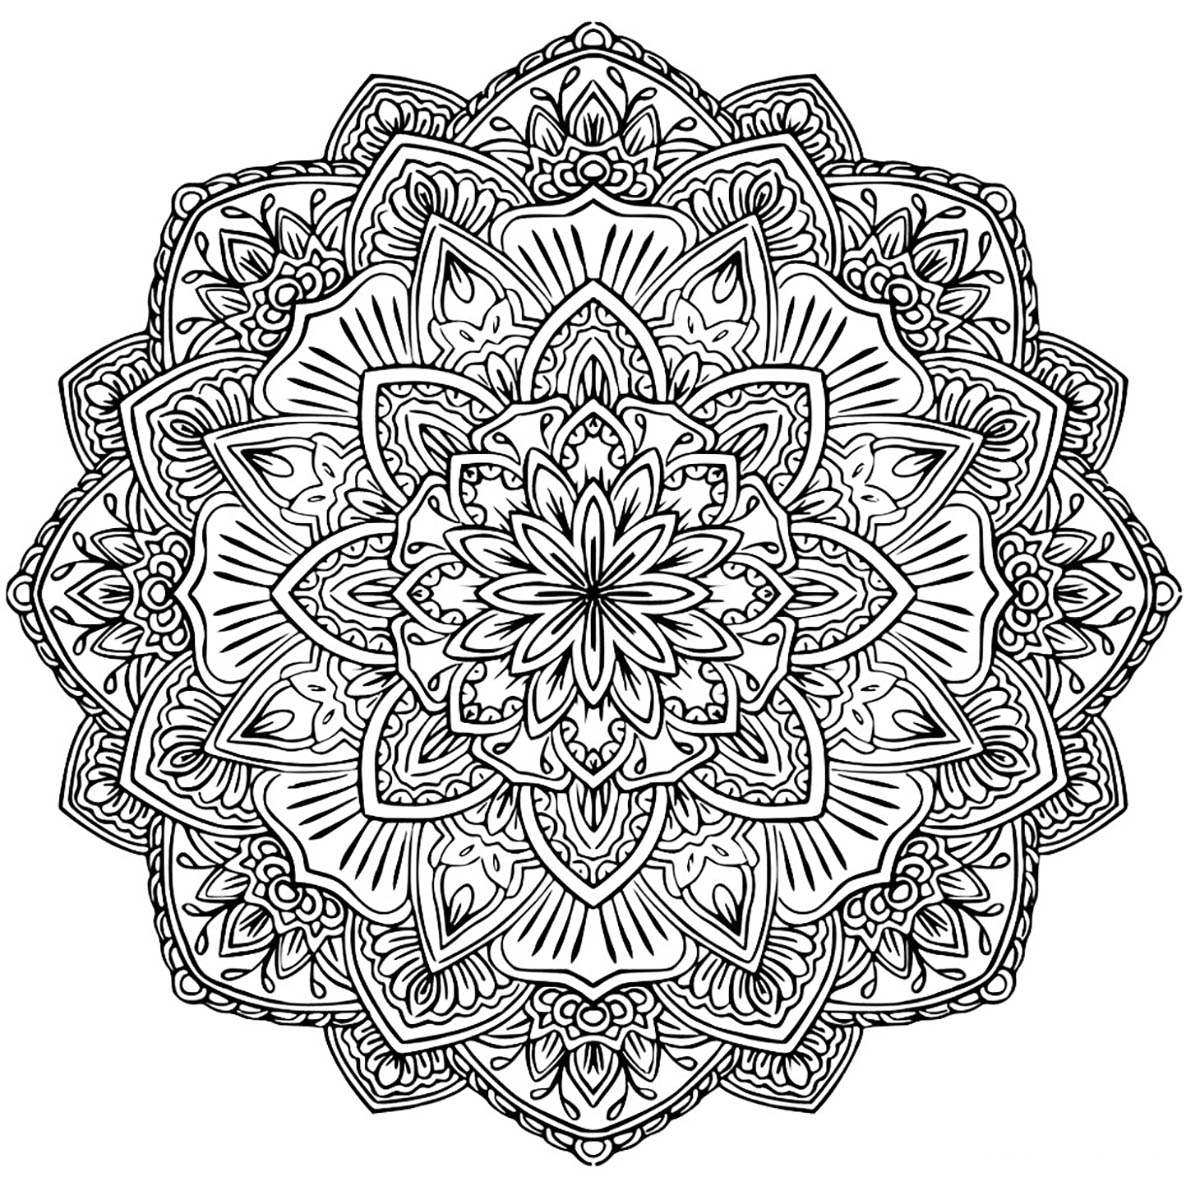 mandalas to color free flower mandala coloring pages best coloring pages for kids to free mandalas color